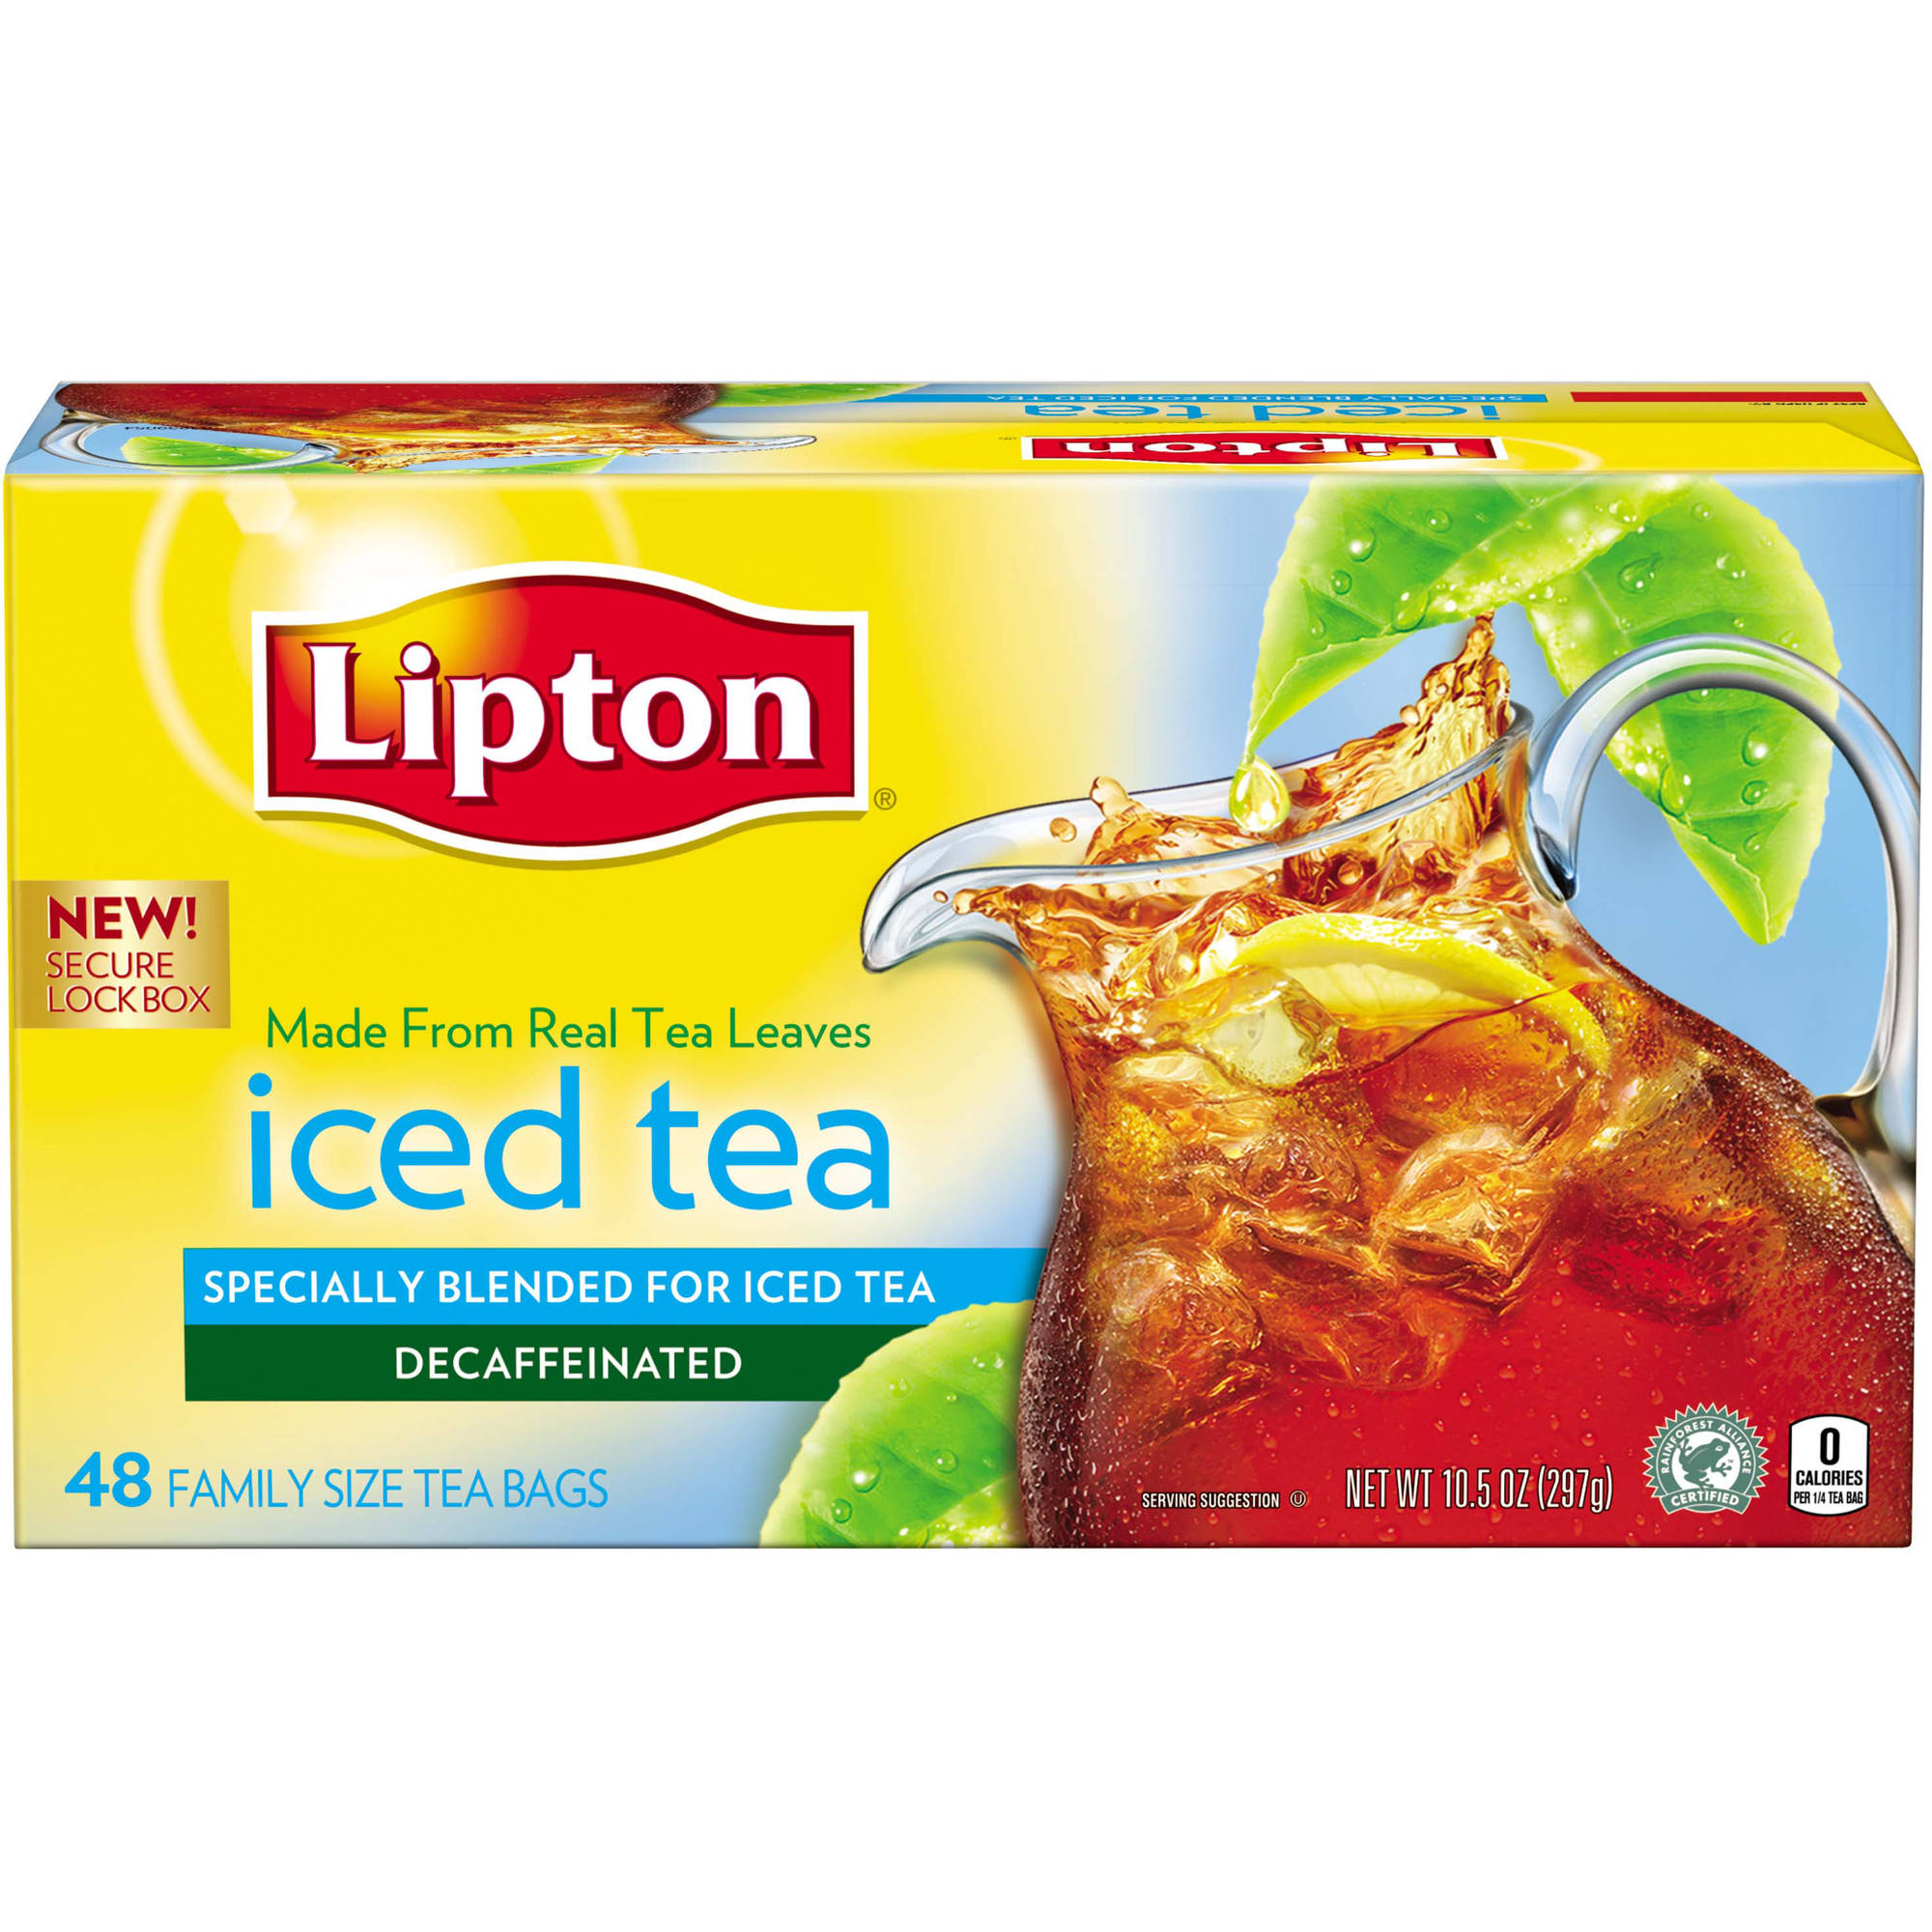 Lipton Decaffeinated Family Size Black Iced Tea Bags, 48 ct